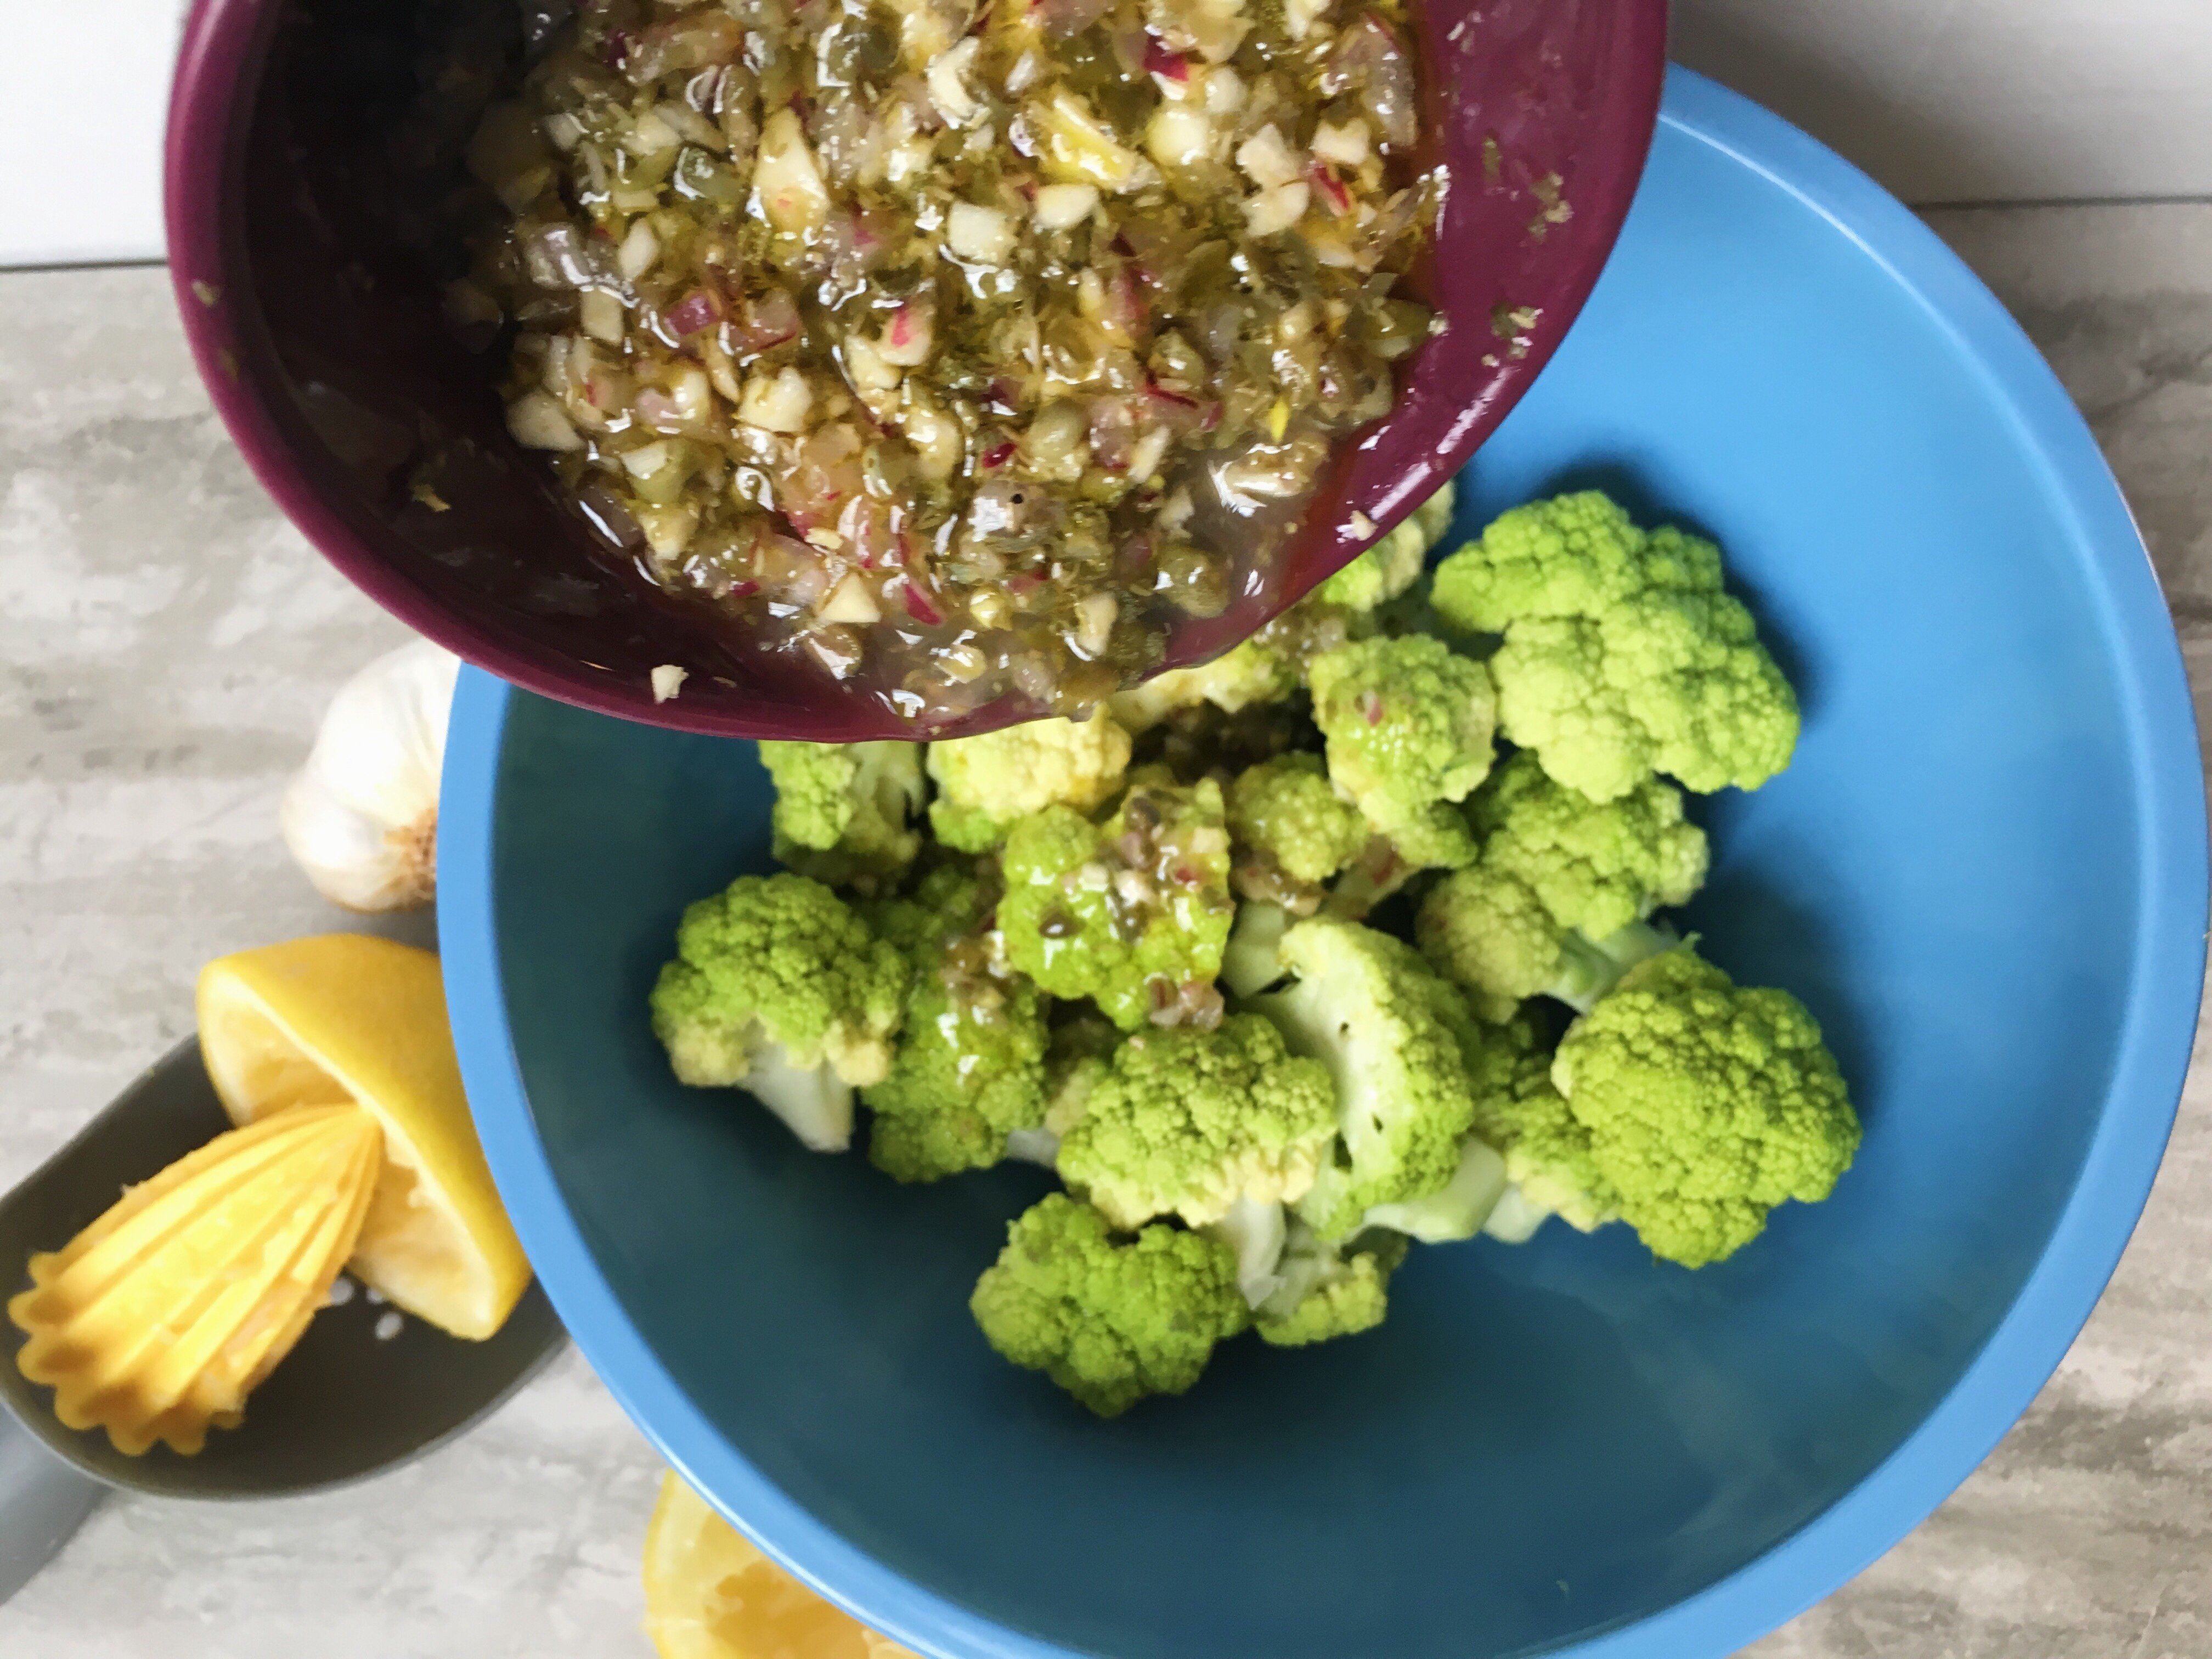 MArinated cauliflower with capers and onions and olive oil